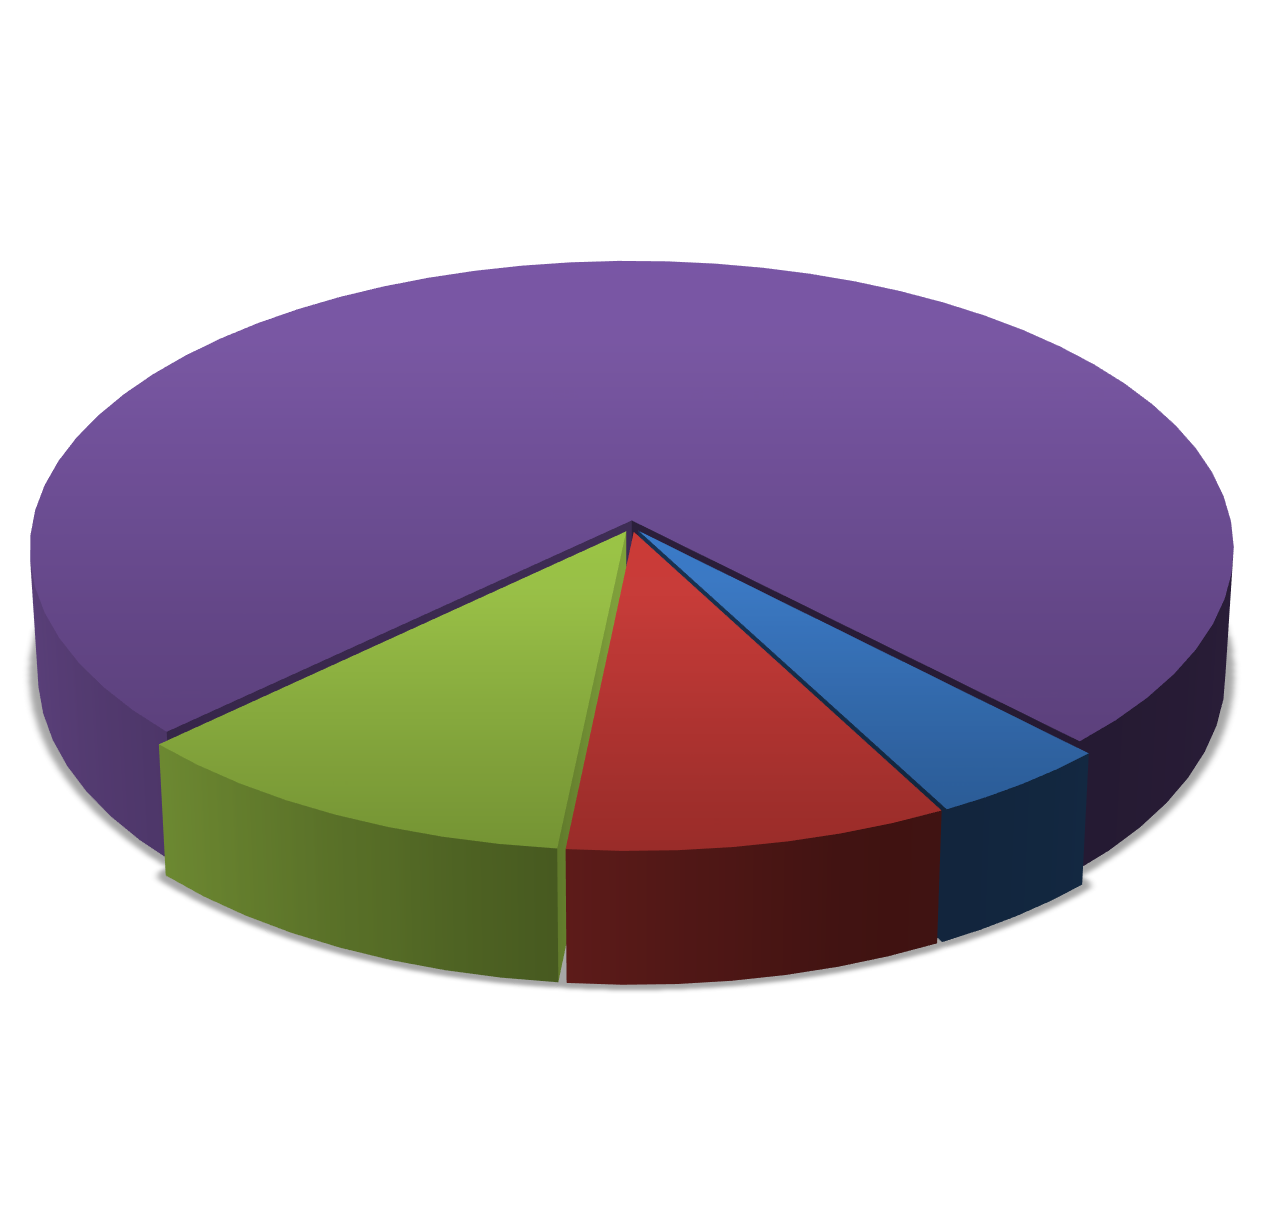 This pie chart shows the degrees to which government and red light this pie chart shows the degrees to which government and red light camera vendors financially exploit science engineering and legislation errors geenschuldenfo Image collections